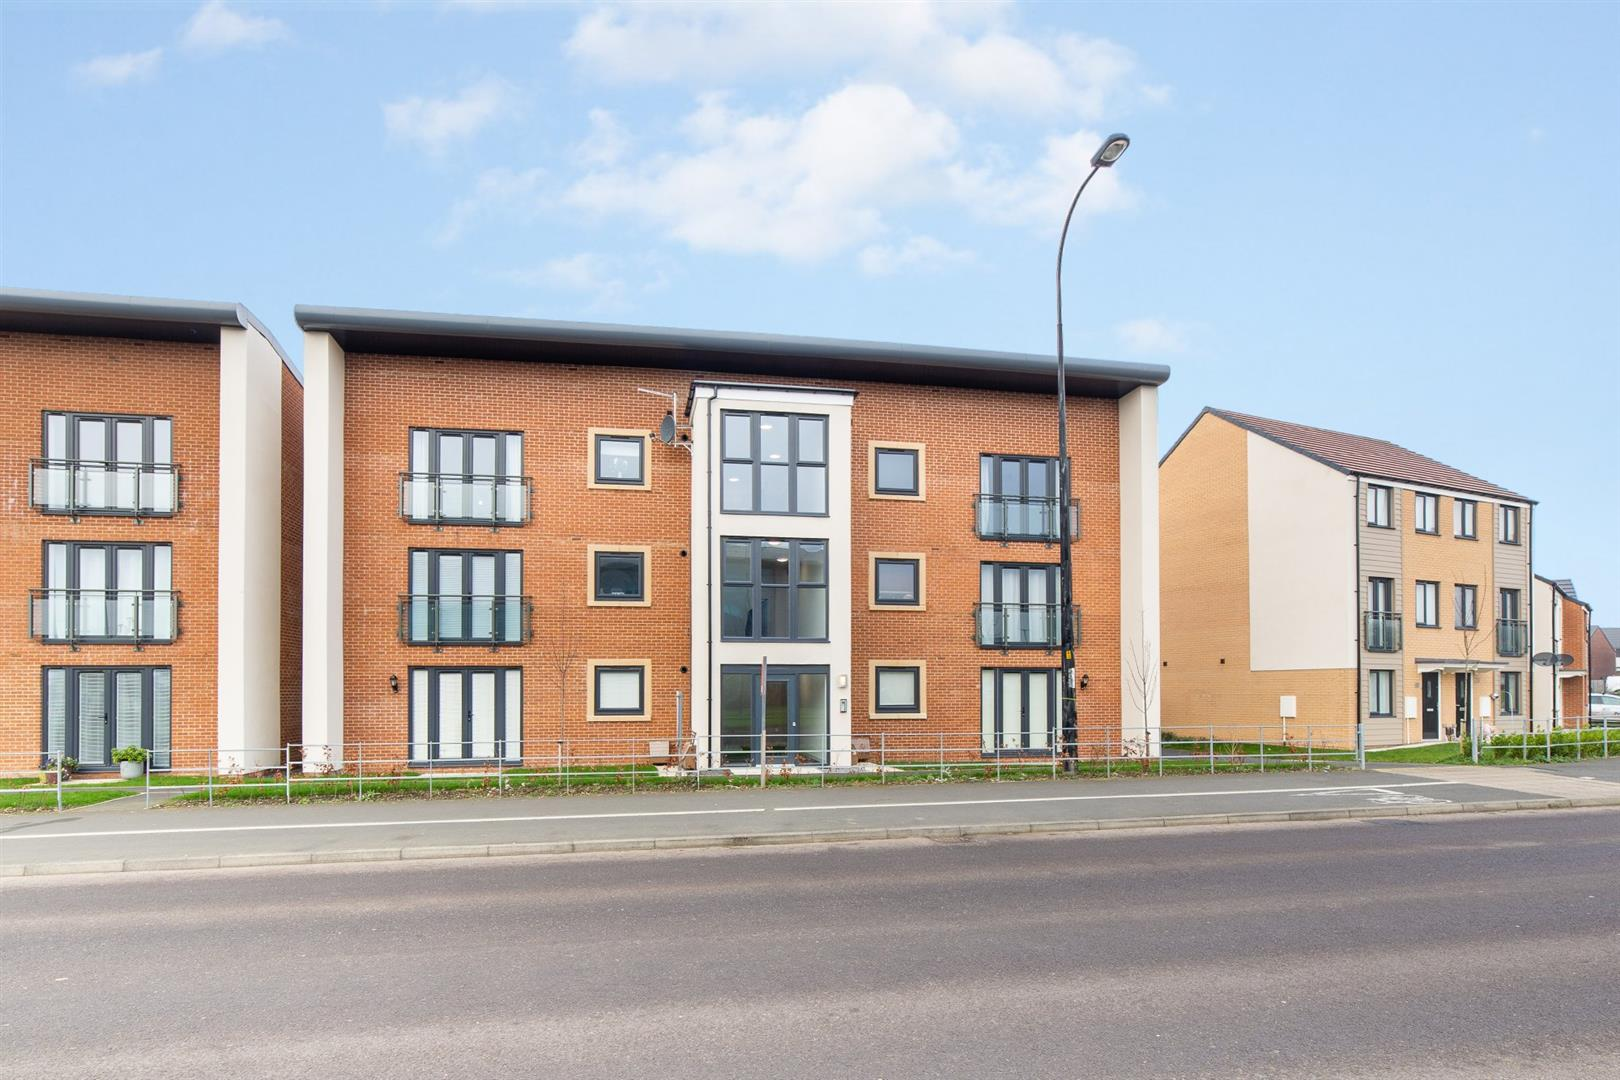 2 bed apartment for sale in Newcastle Upon Tyne, NE13 9EP - Property Image 1